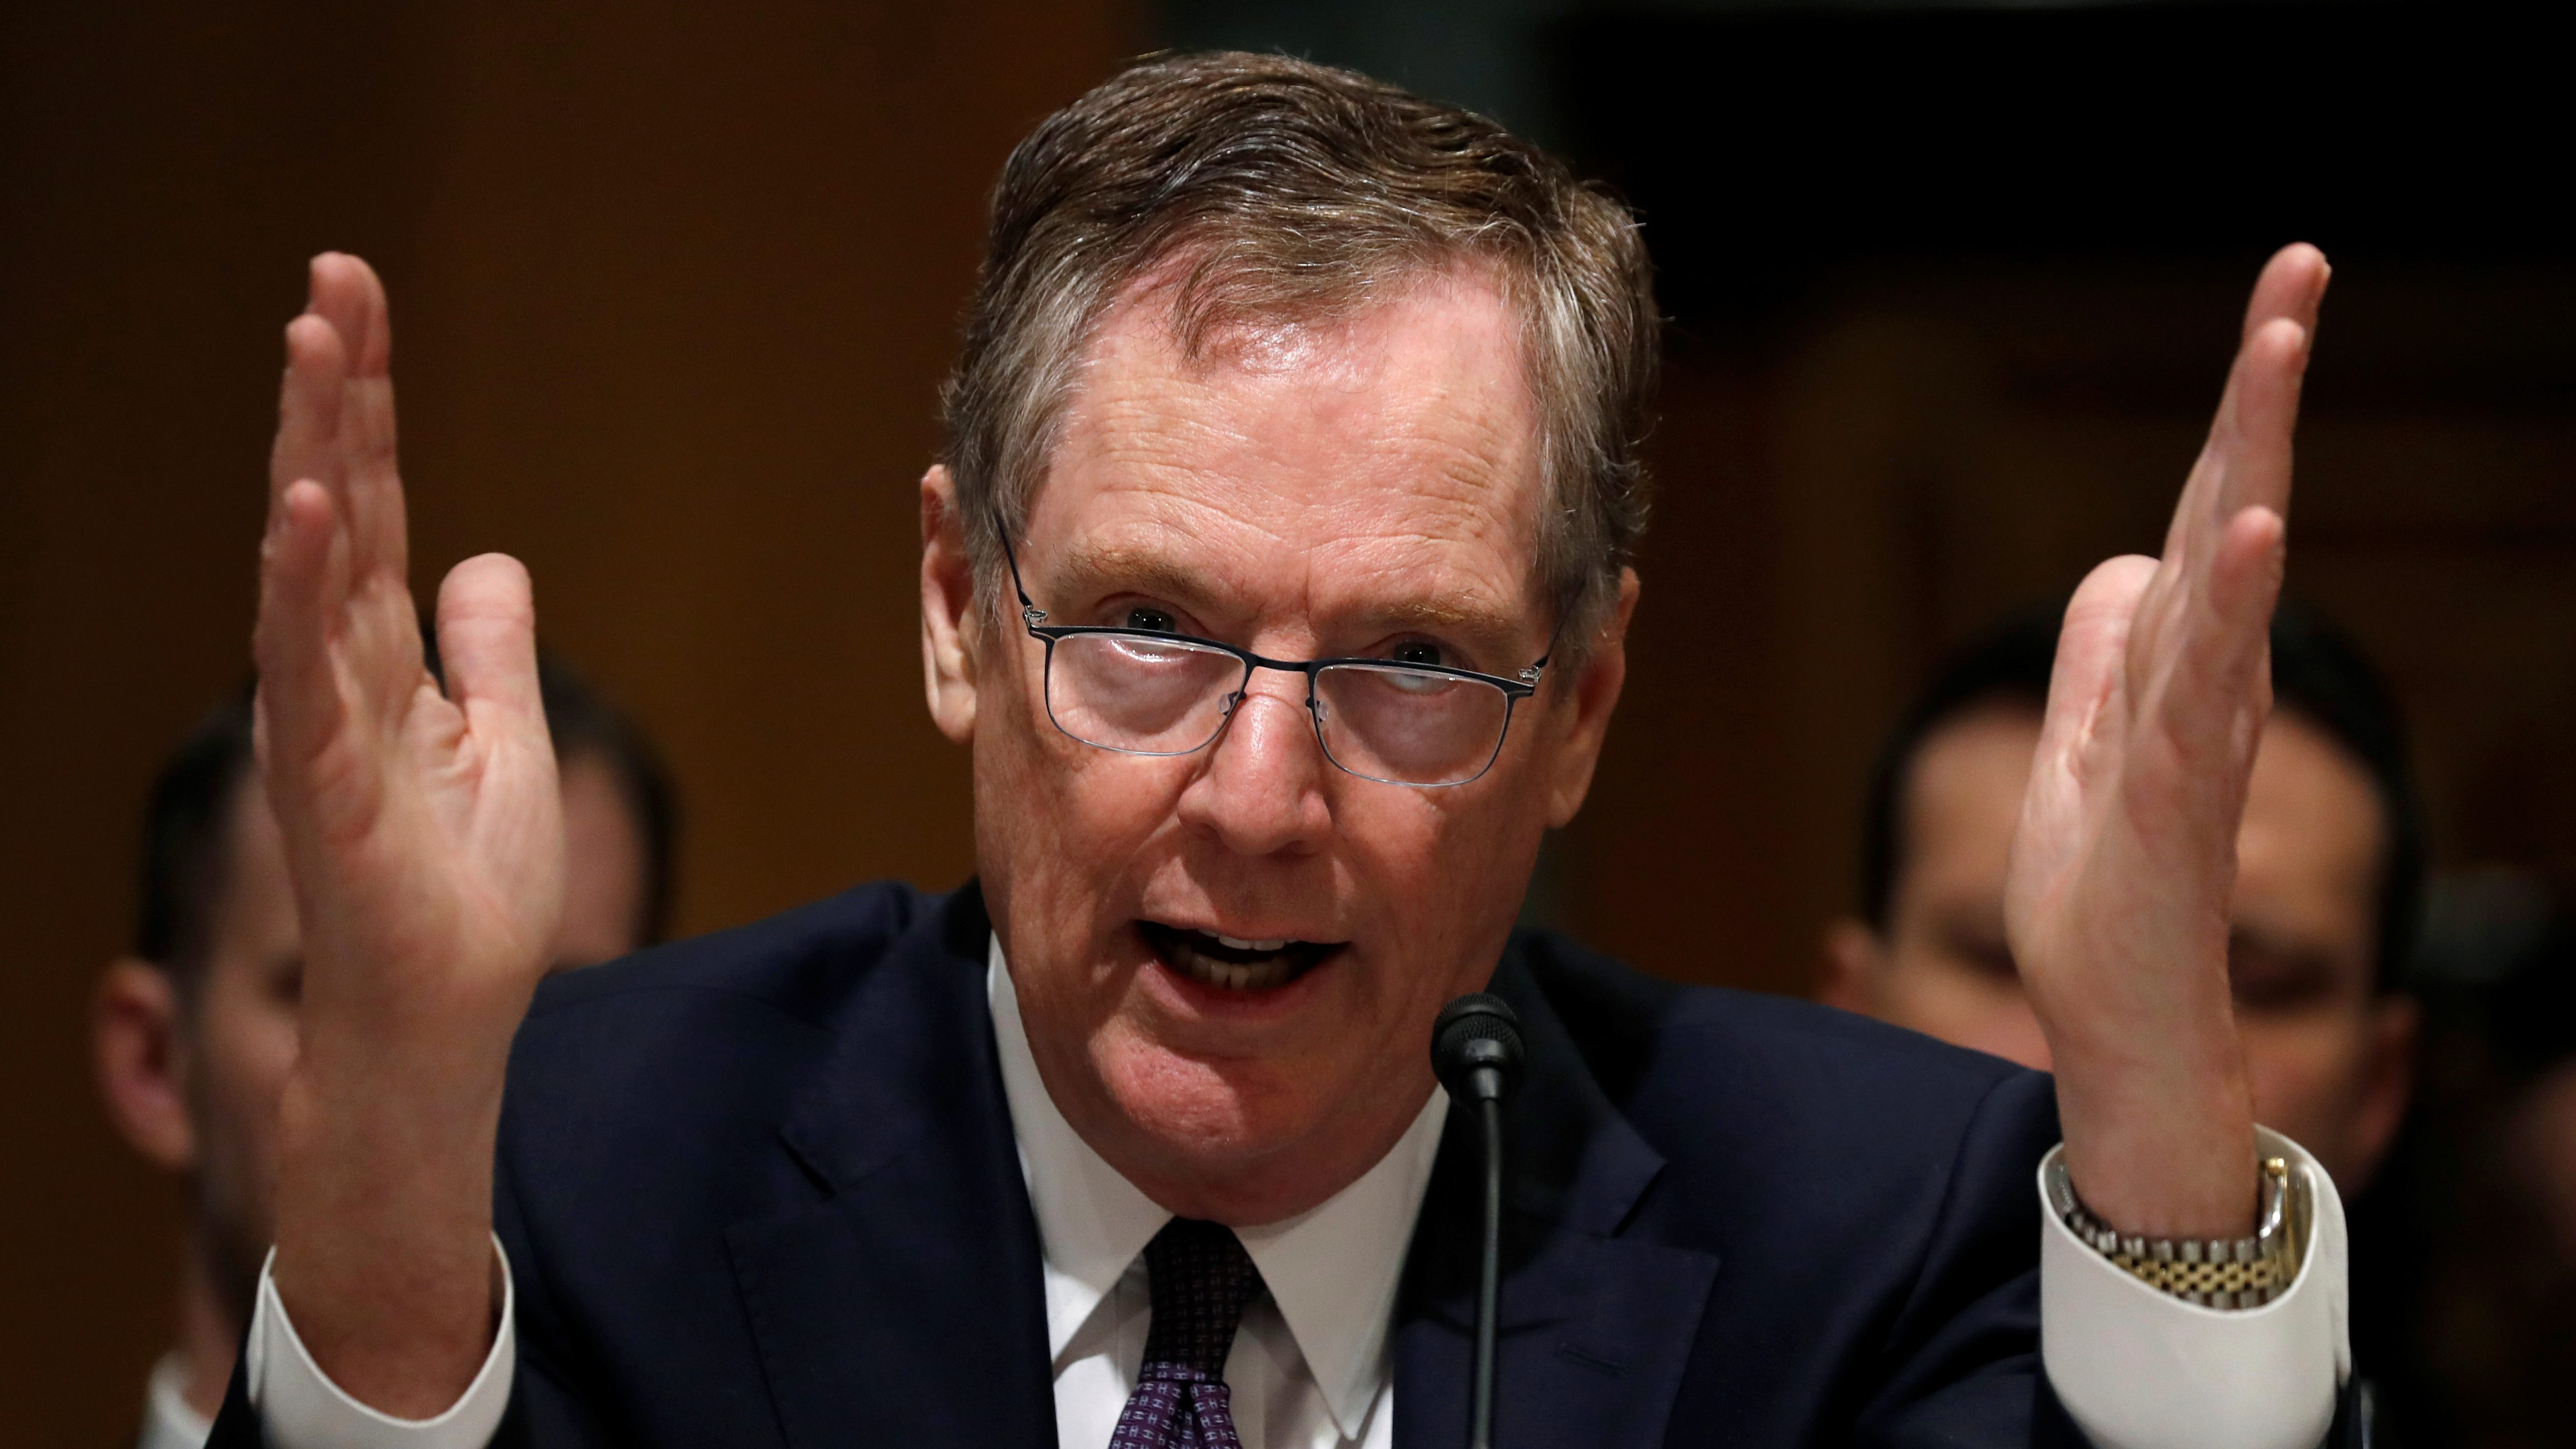 """U.S. Trade Representative Robert Lighthizer testifies before a Senate Finance Committee hearing on """"President Trump's 2018 Trade Policy Agenda"""" on Capitol Hill in Washington, U.S., March 22, 2018. REUTERS/Kevin Lamarque - RC1A098A79A0"""